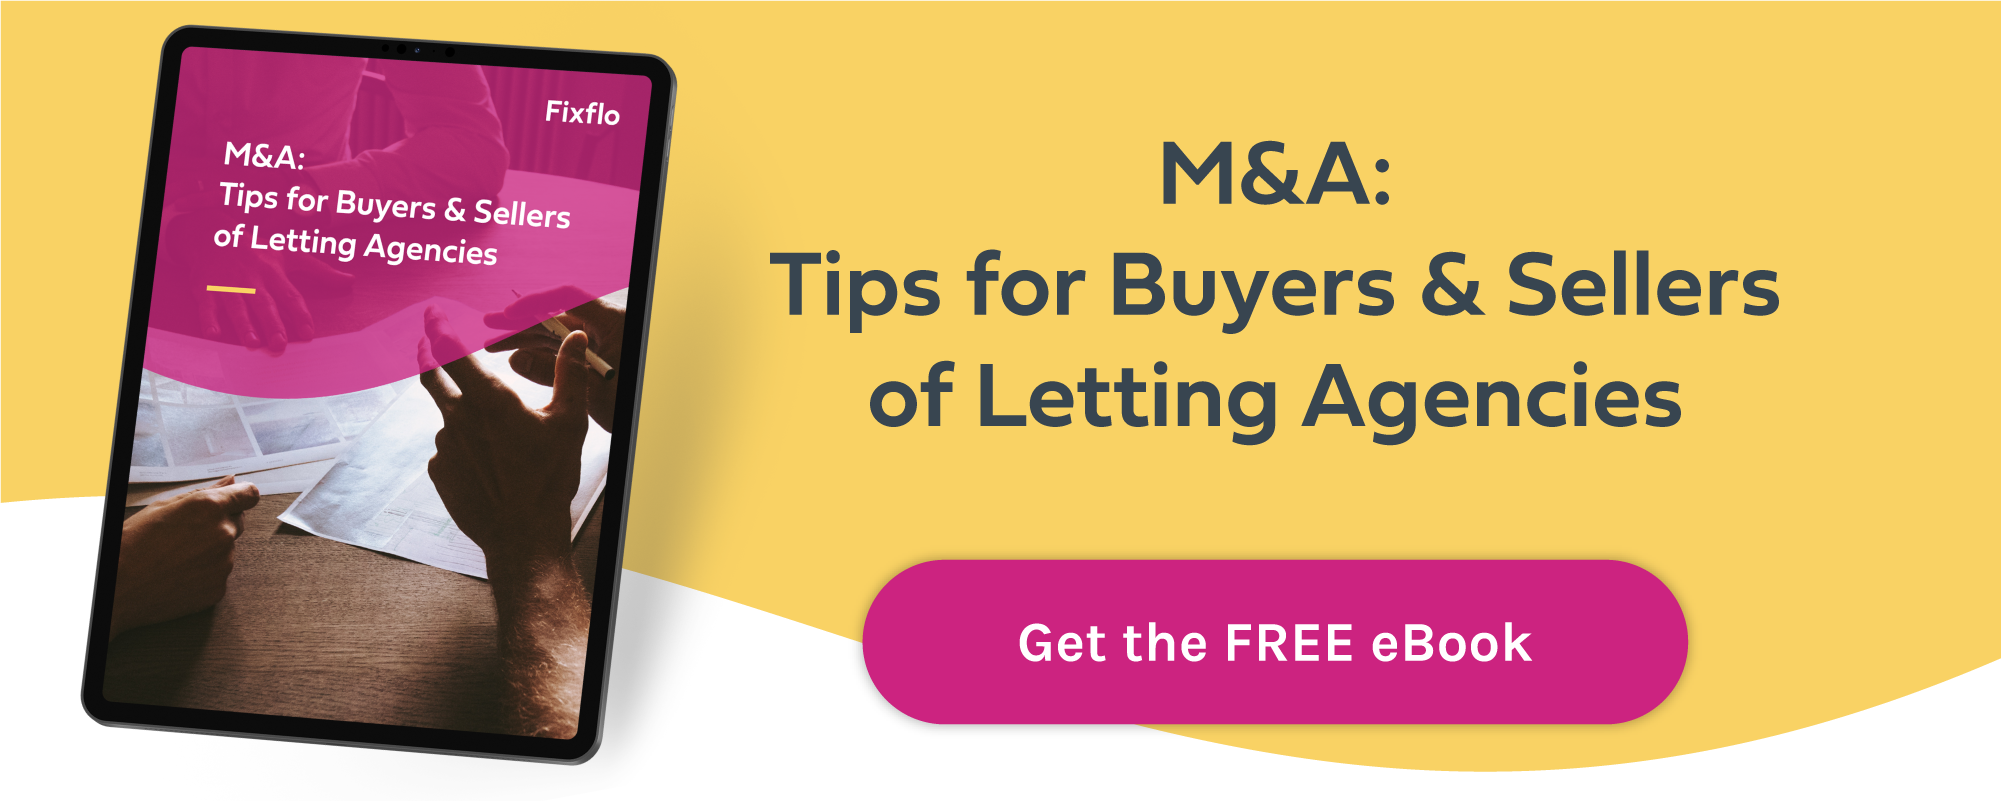 M&A - Tips for Buyers & Sellers of Letting Agencies_Email